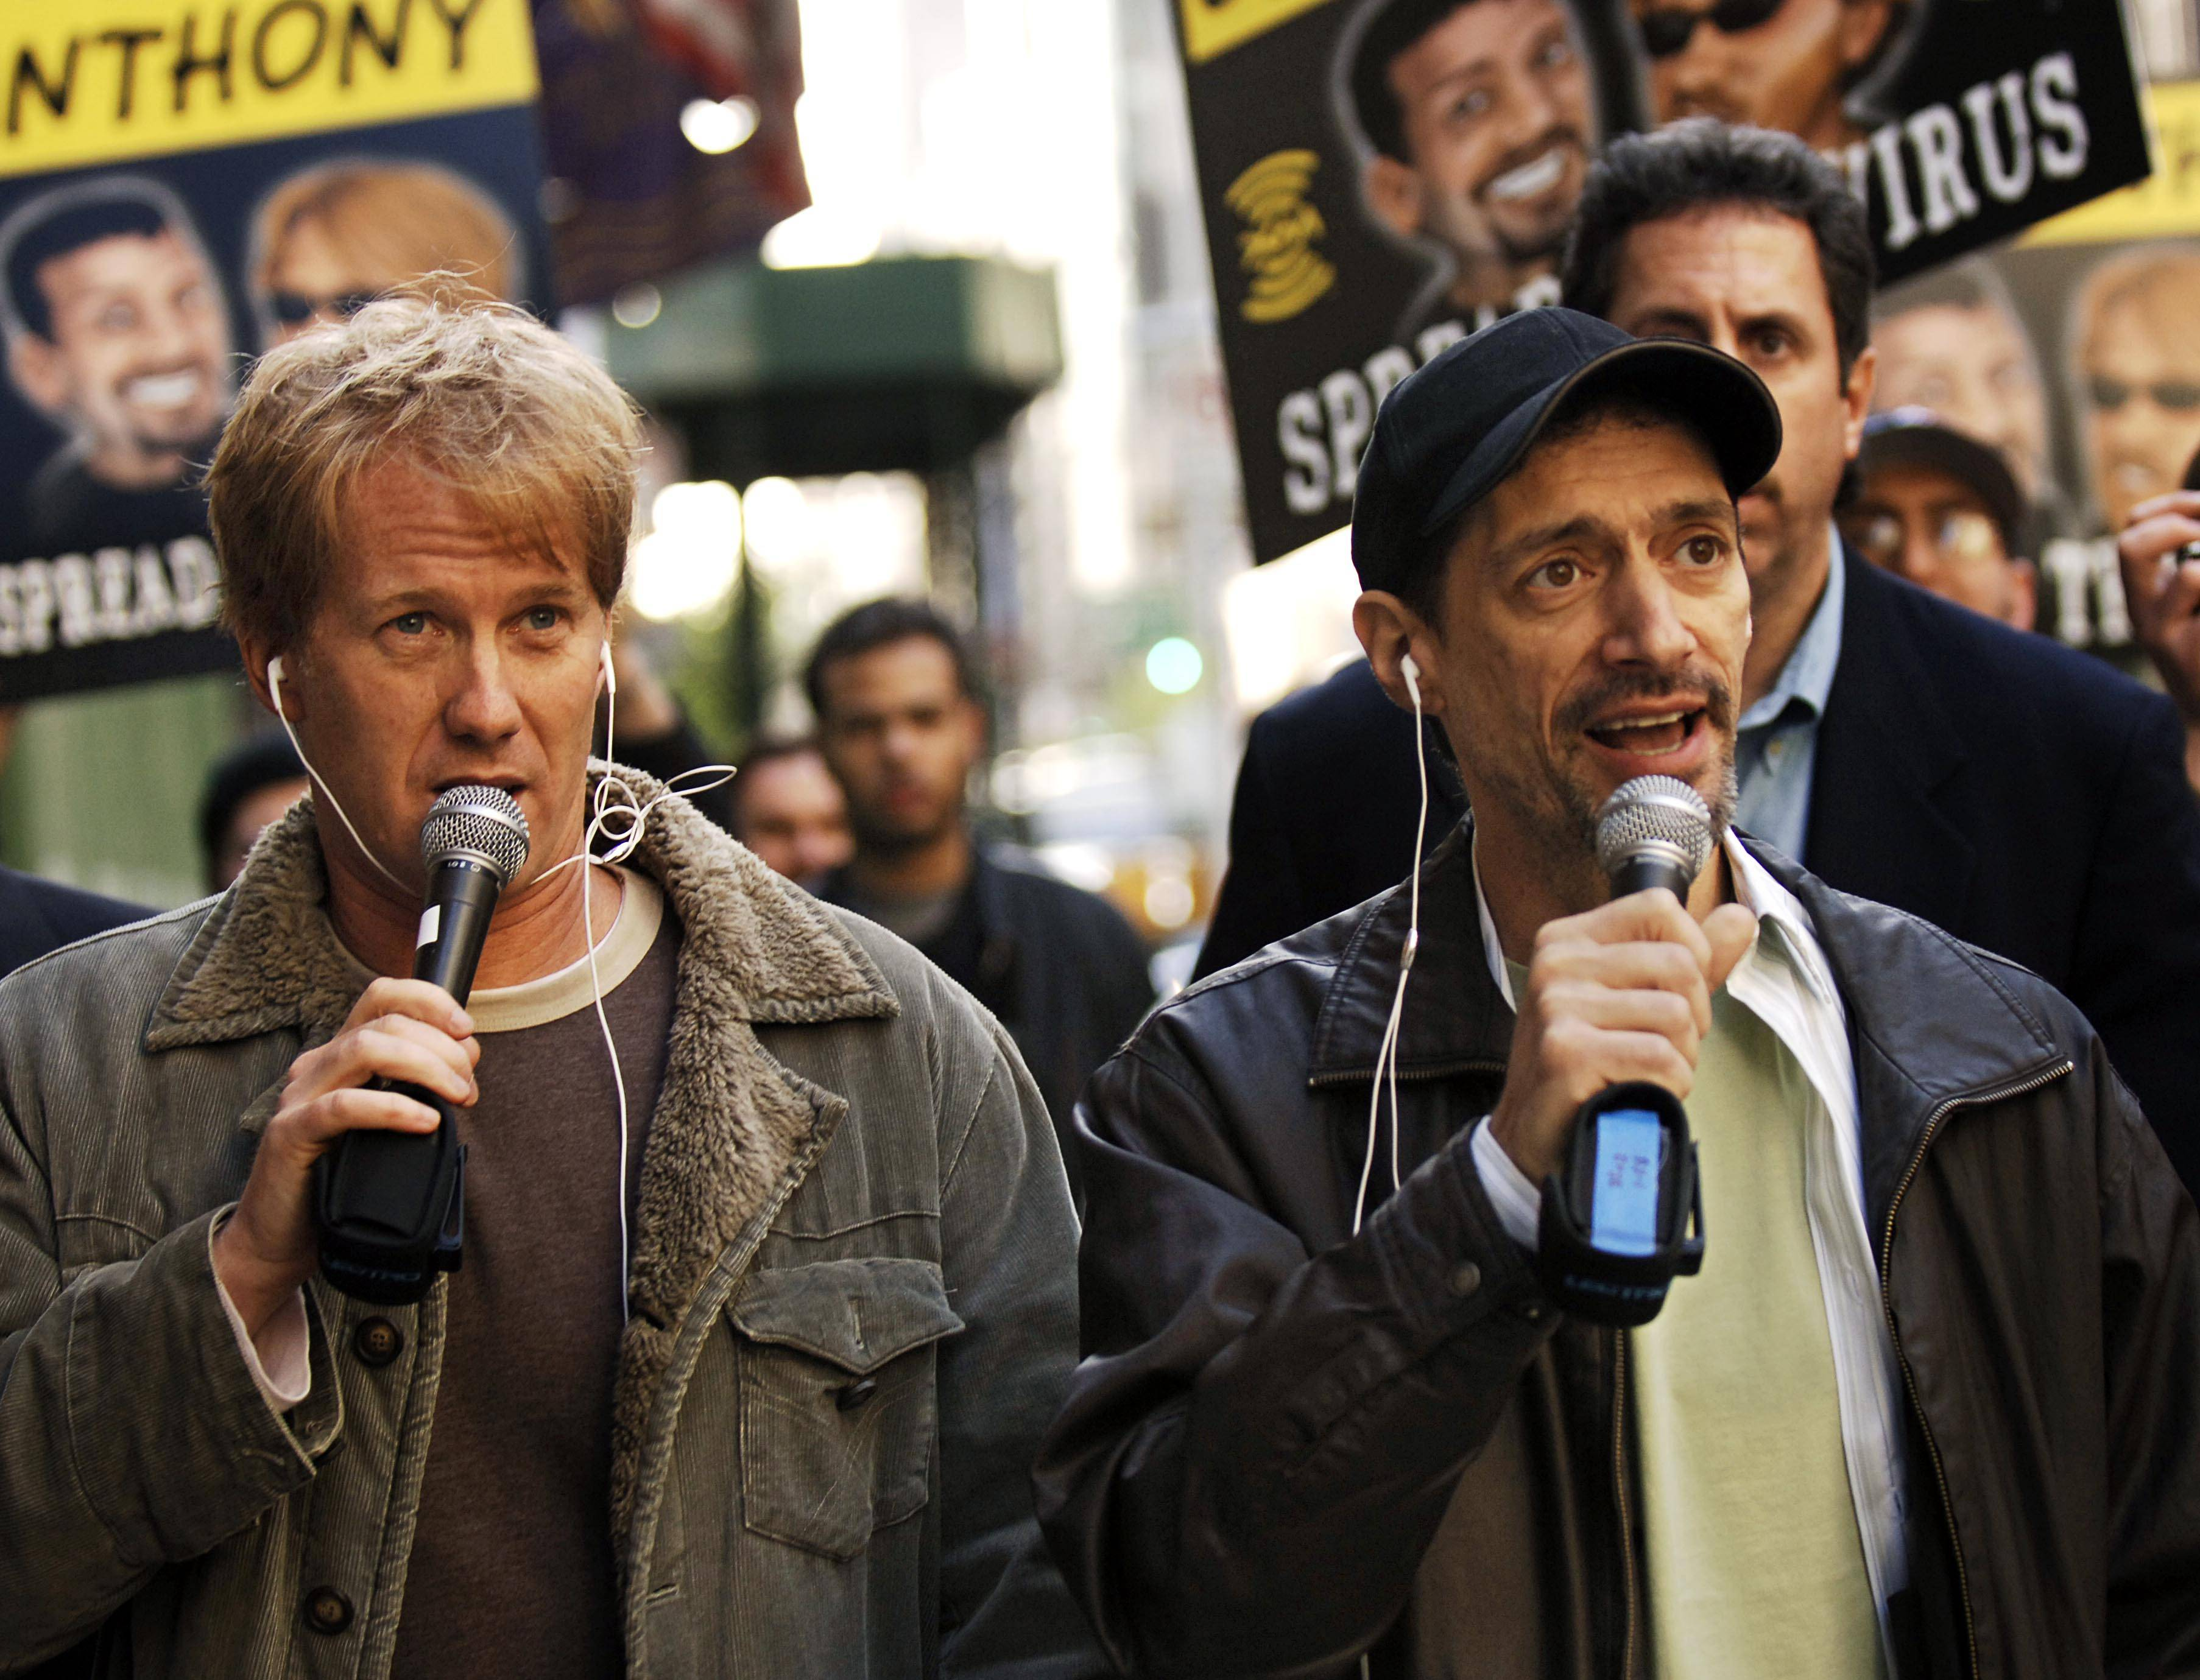 "Radio shock jocks Greg ""Opie"" Hughes, left, and Anthony Cumia, right, leave CBS Radio studios on 57th Street with fans after finishing their first morning show, in New York."